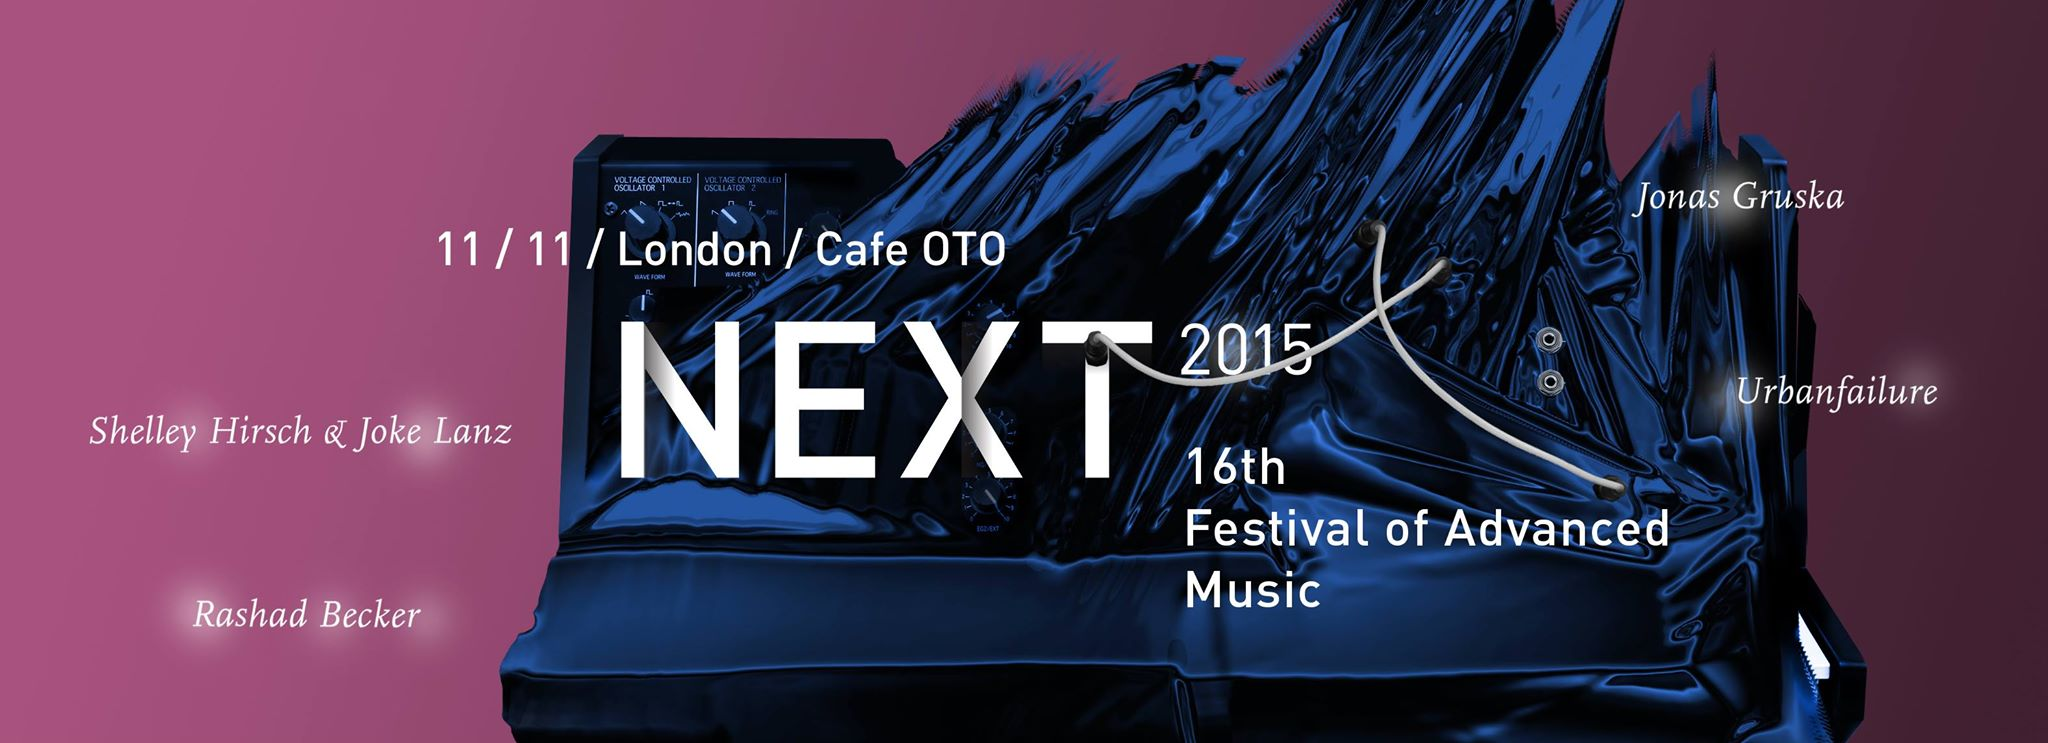 11 November 2015 :: urbanfailure will perform live @ Next Festival / London / Cafe OTO